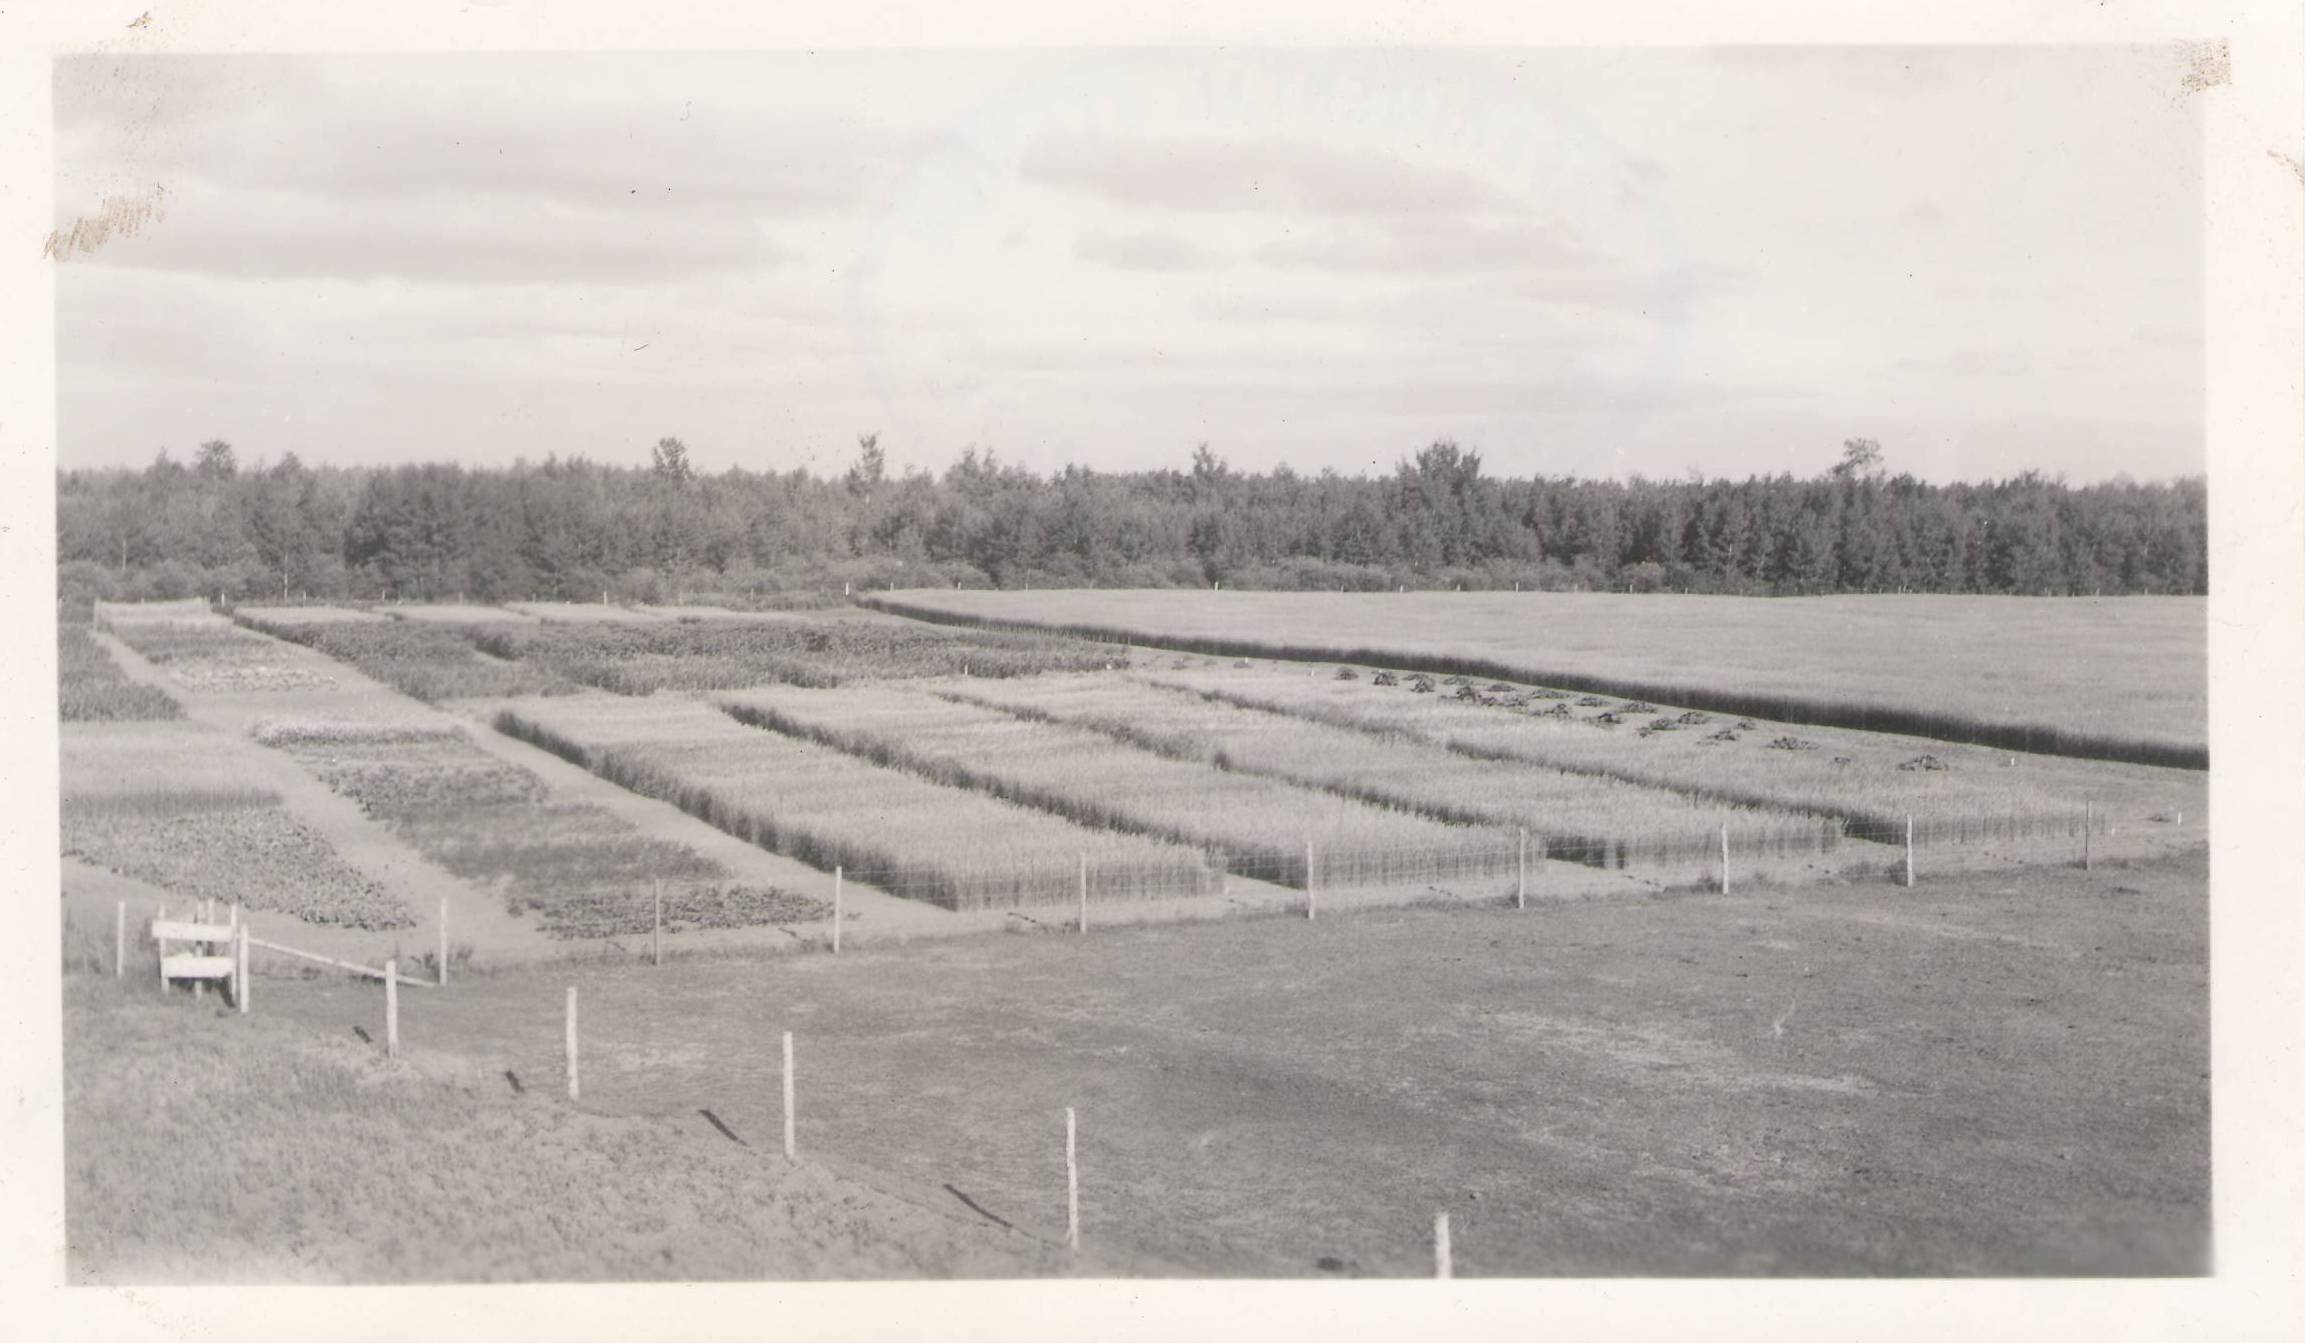 Plots at the Fort Vermilion Experimental Farm. 1993.04.31.06 / Agriculture Canada